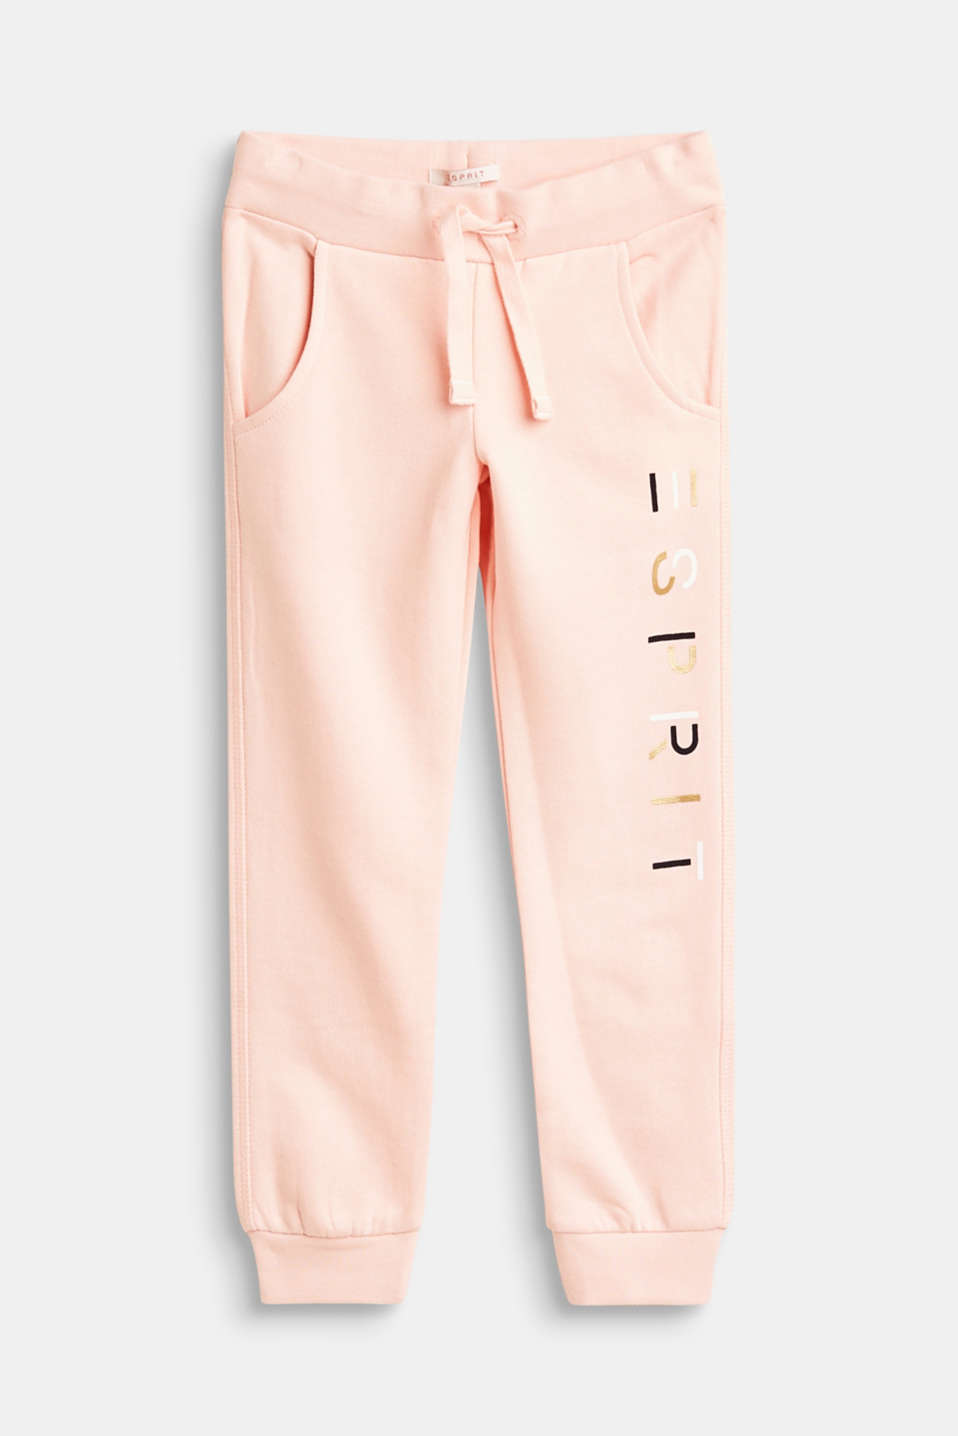 Esprit - Tracksuit bottoms with a shiny logo, 100% cotton